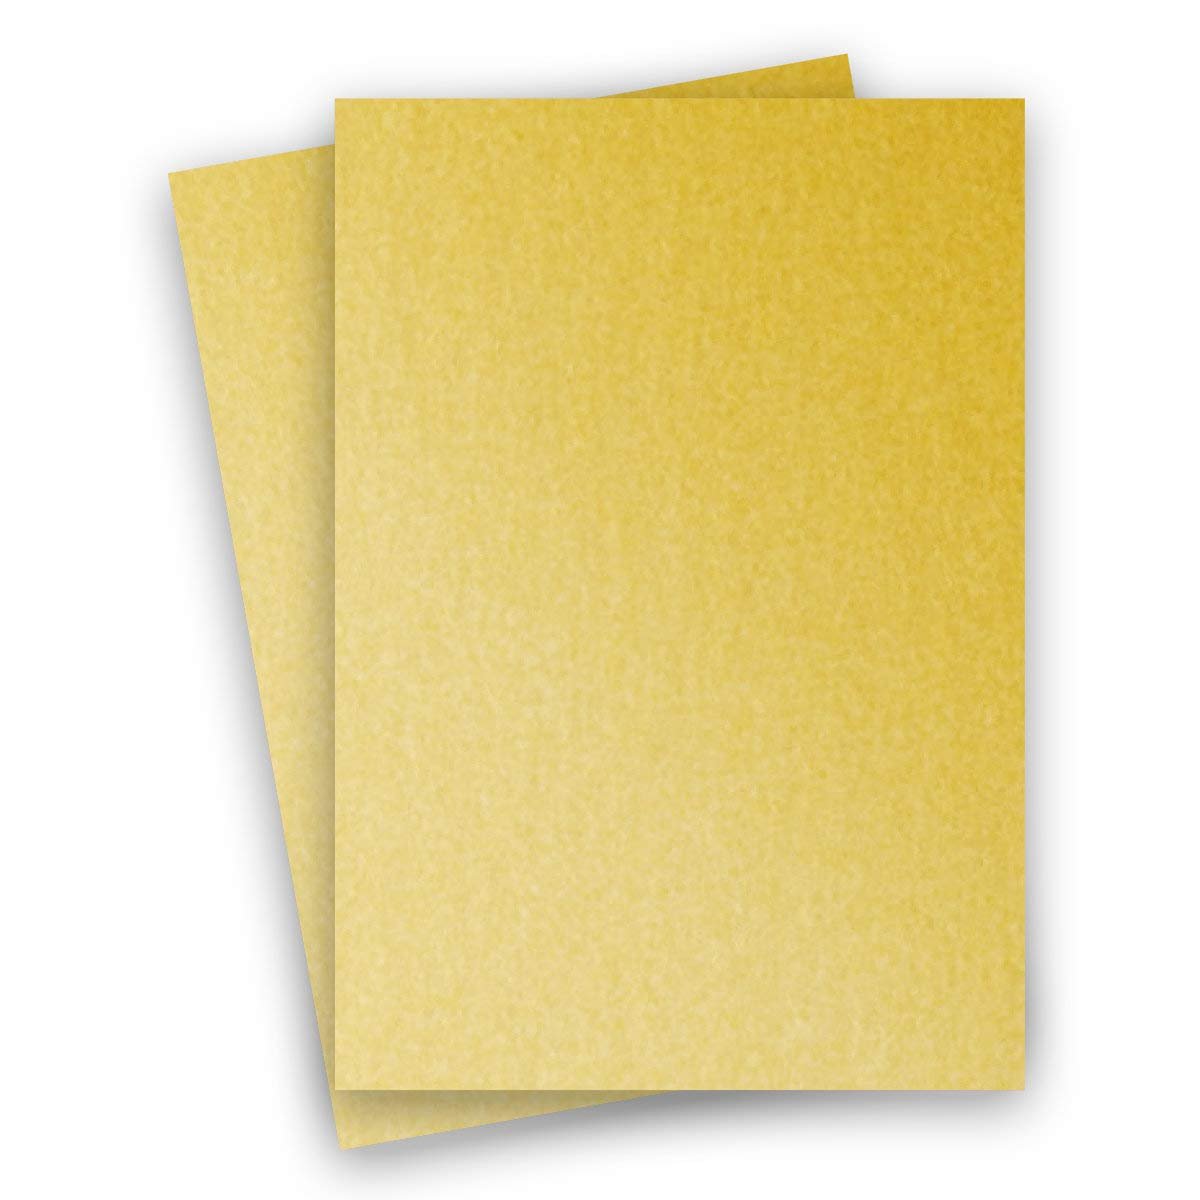 Metallic Gold 8-1/2-x-14 Cardstock Paper 150-pk - PaperPapers 284 GSM (105lb Cover) LEGAL size Metallic Card Stock Paper - Business, Card Making, Designers, Professional and DIY Projects